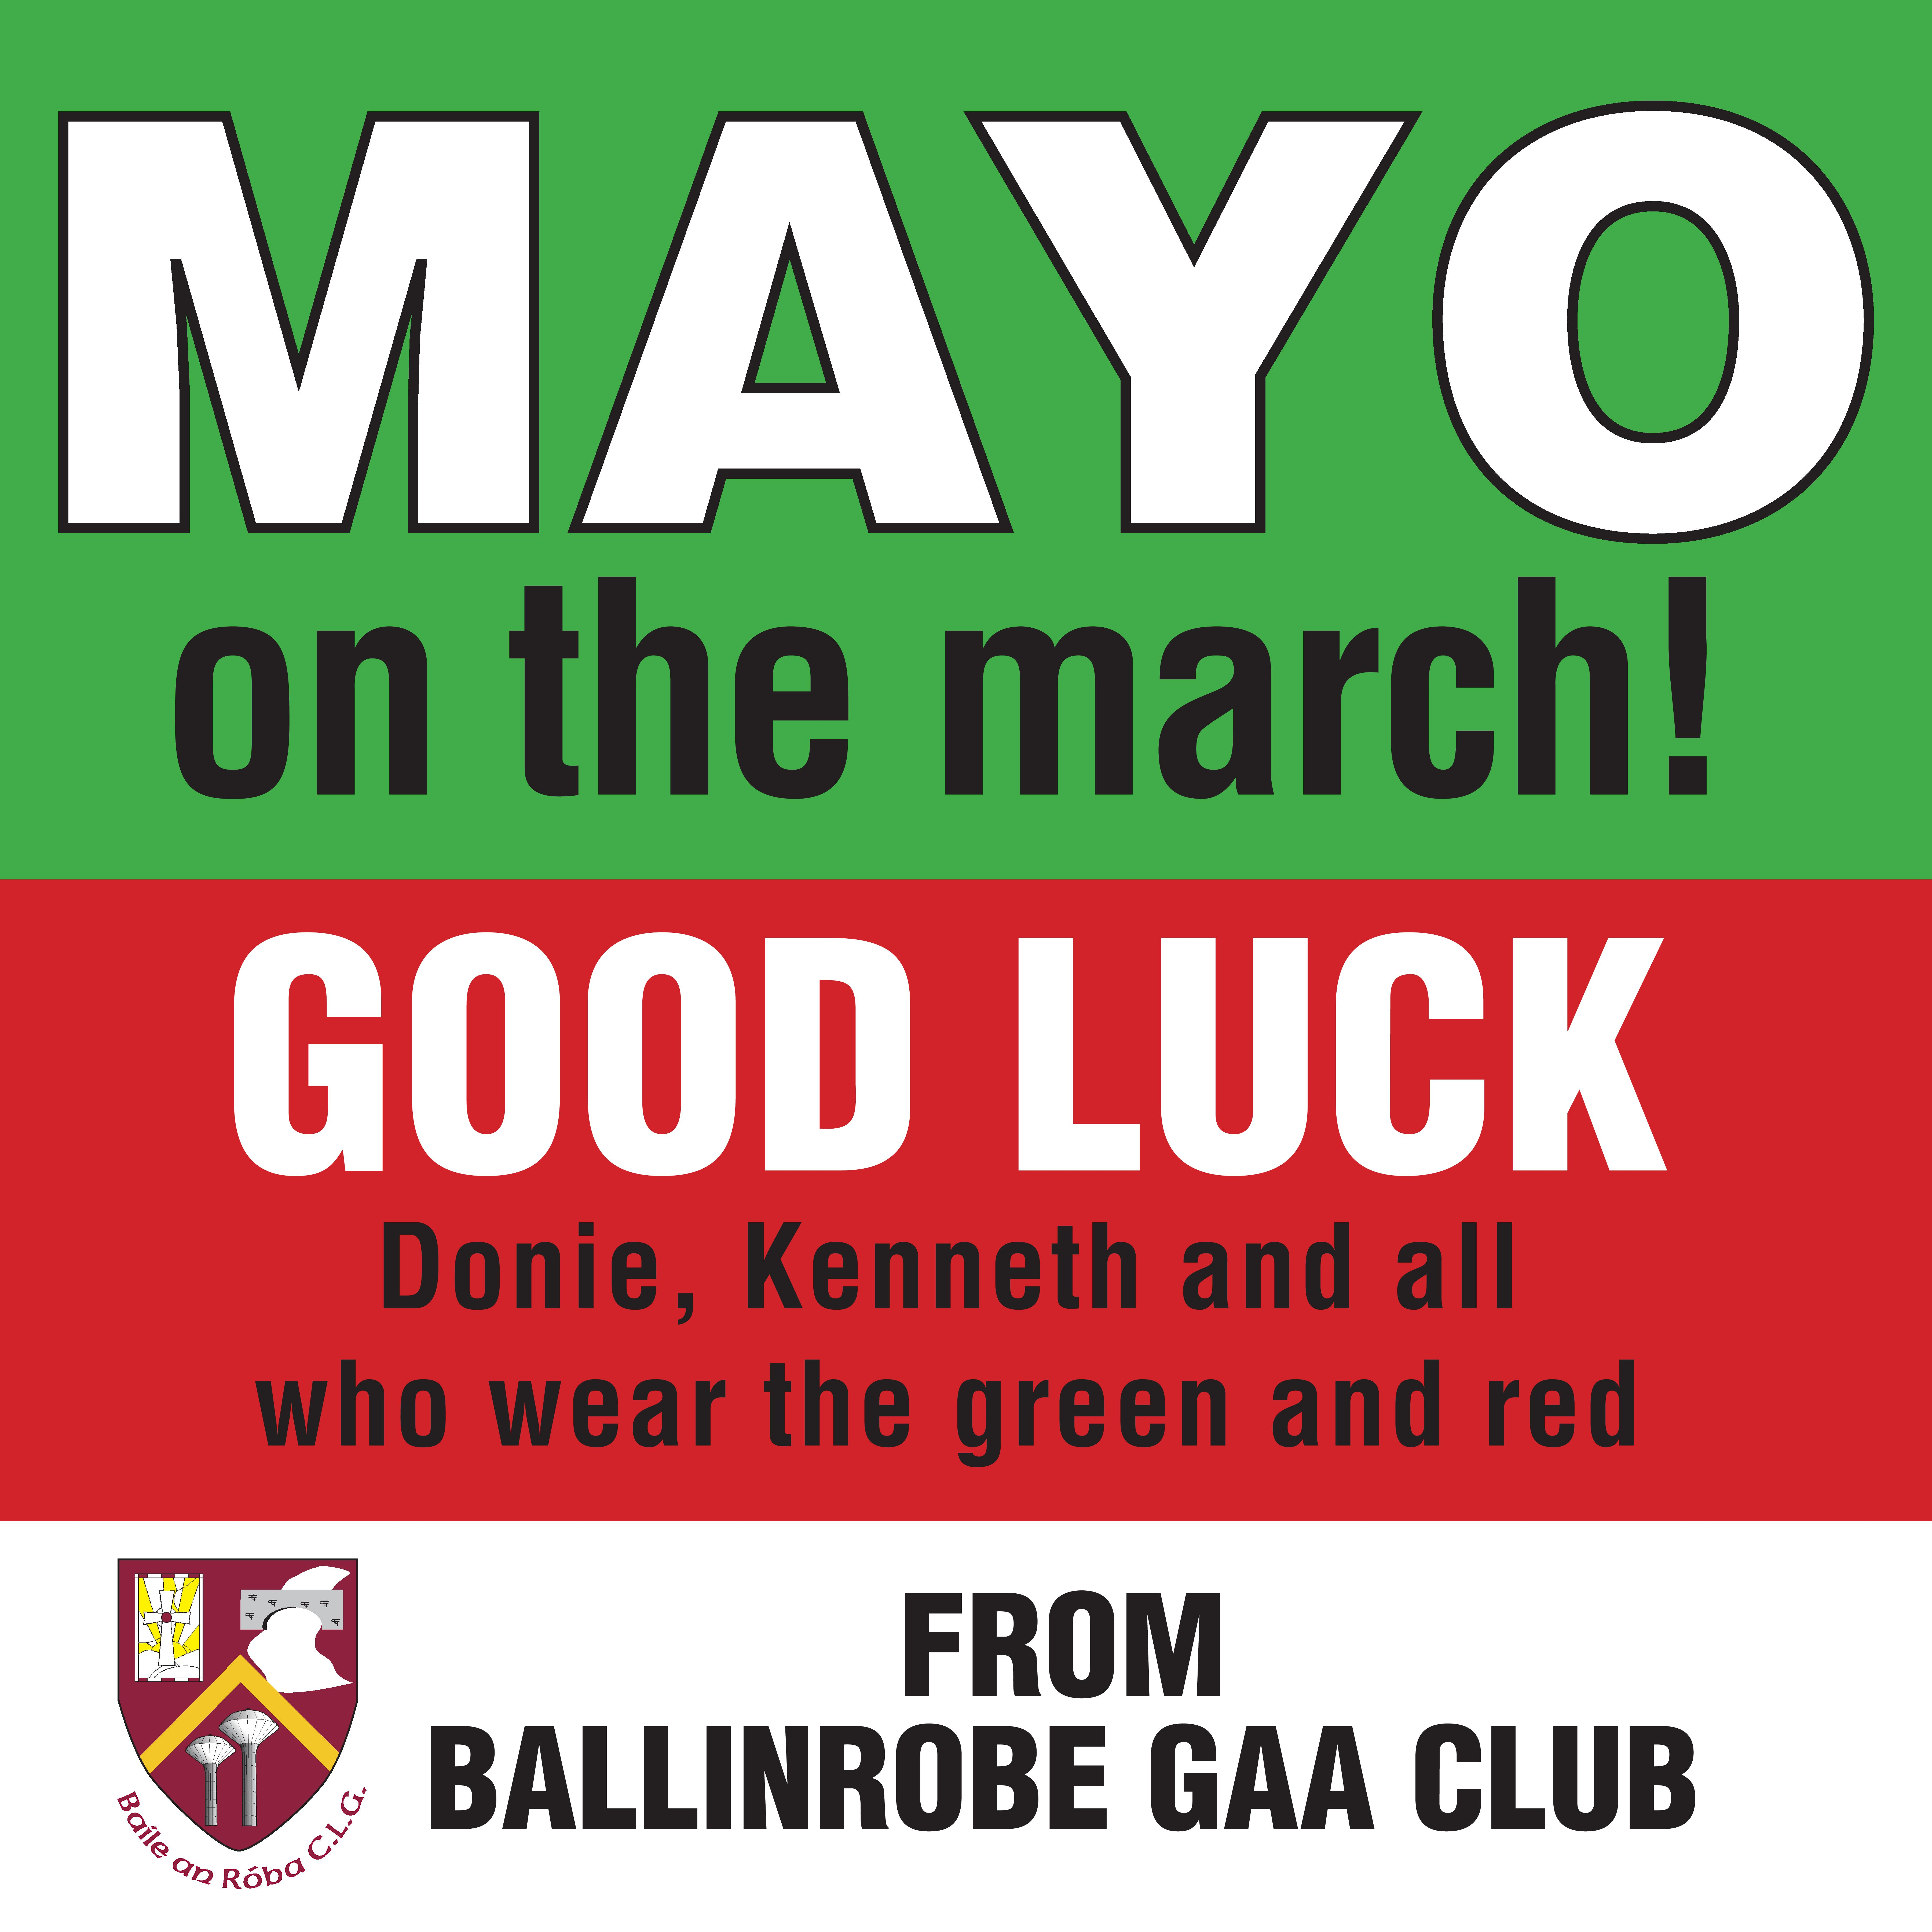 Supporting our men in the Mayo colours